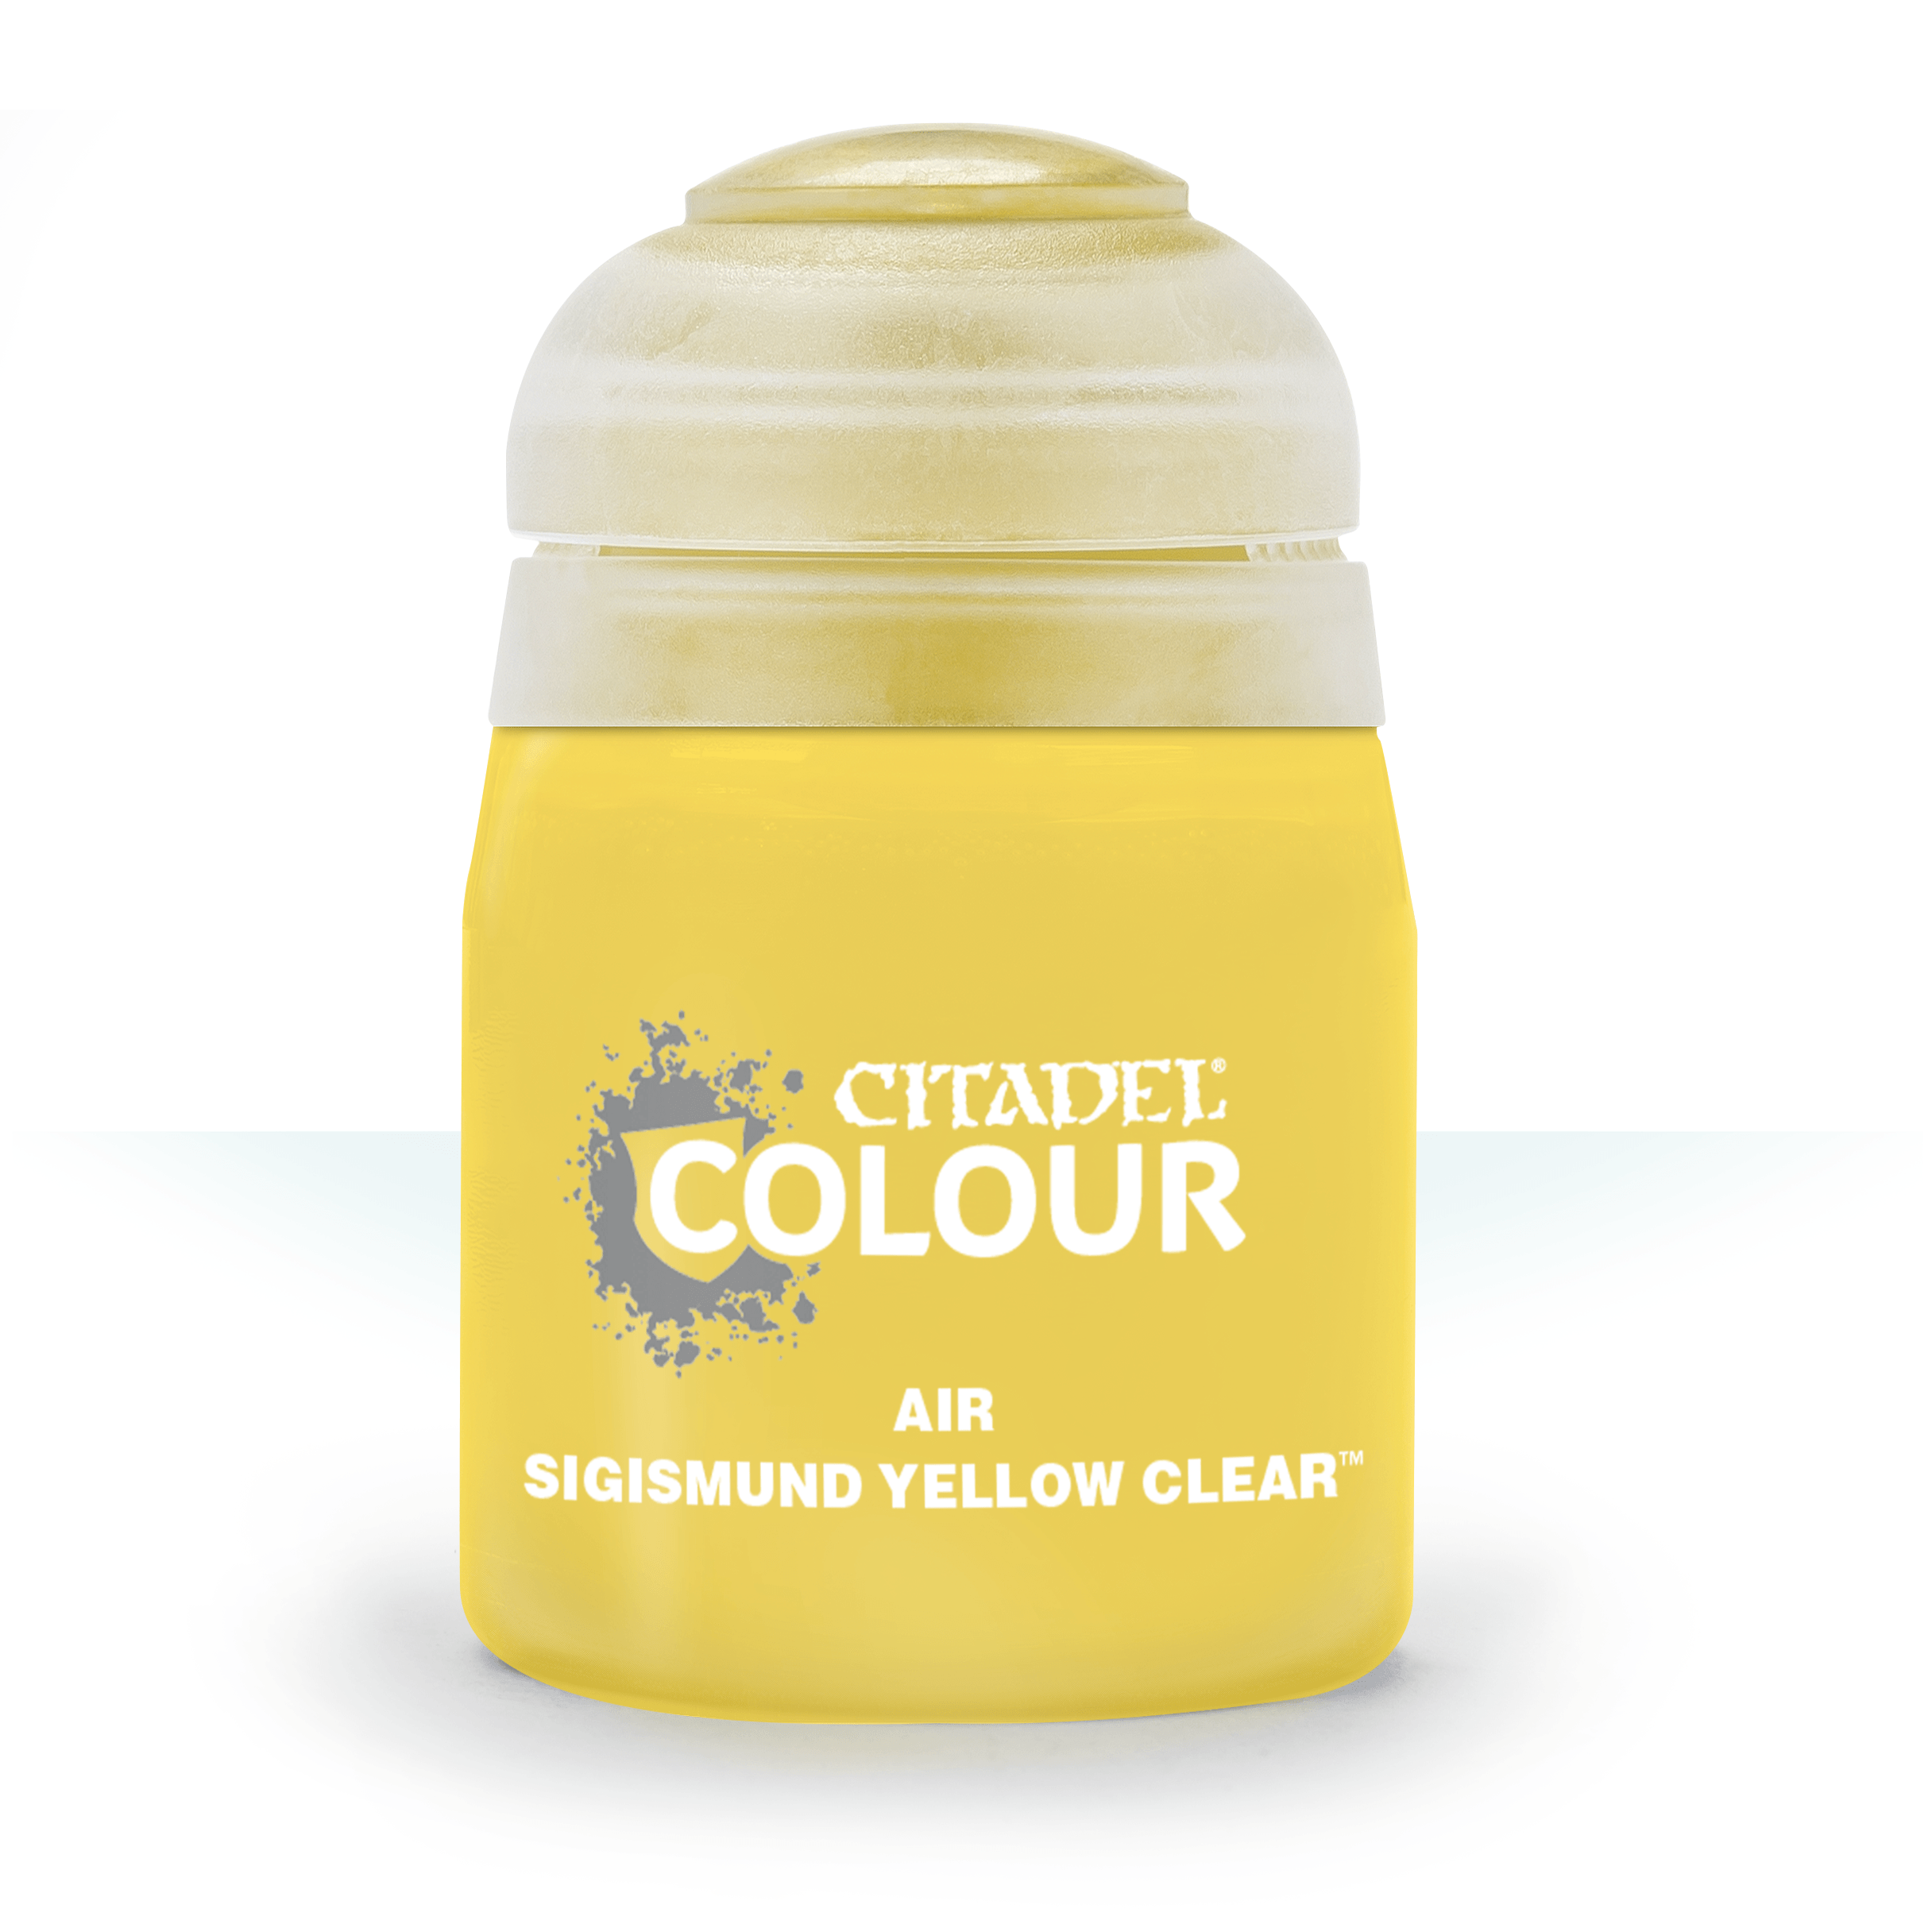 Citadel Airbrush Paints: Sigismund Yellow Clear